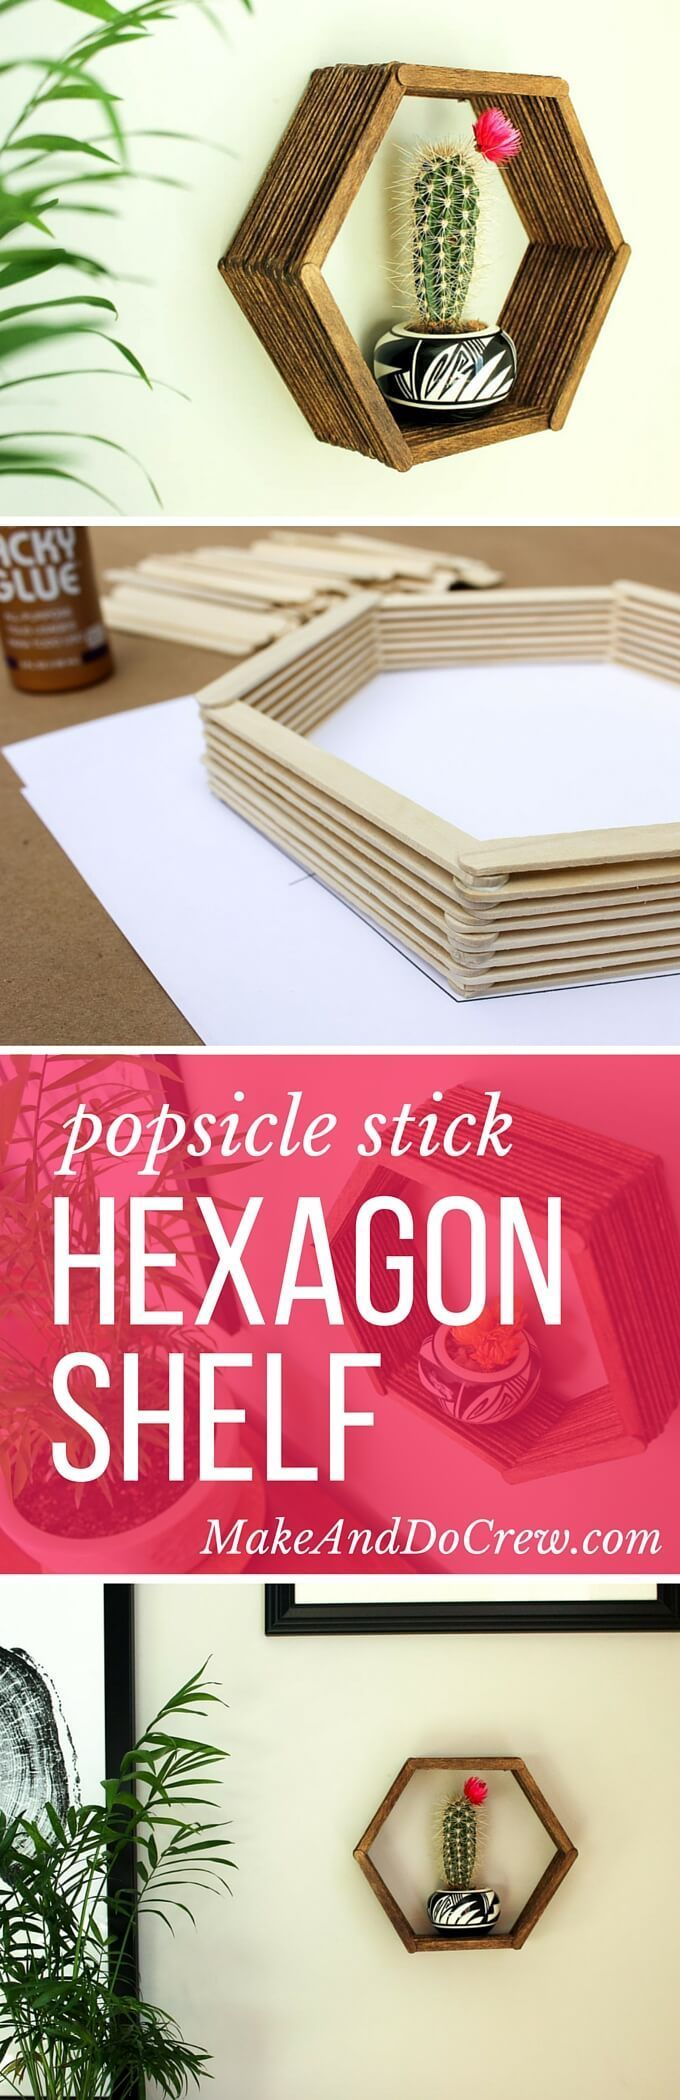 Add some mid-century charm to your gallery wall with this DIY wall art idea. All you need is popsicle sticks, glue and some stain to make this inexpensive home decor knockout. Click to see the full tutorial and download the hexagon template. | MakeAndDoCrew.com   via @makeanddocrew